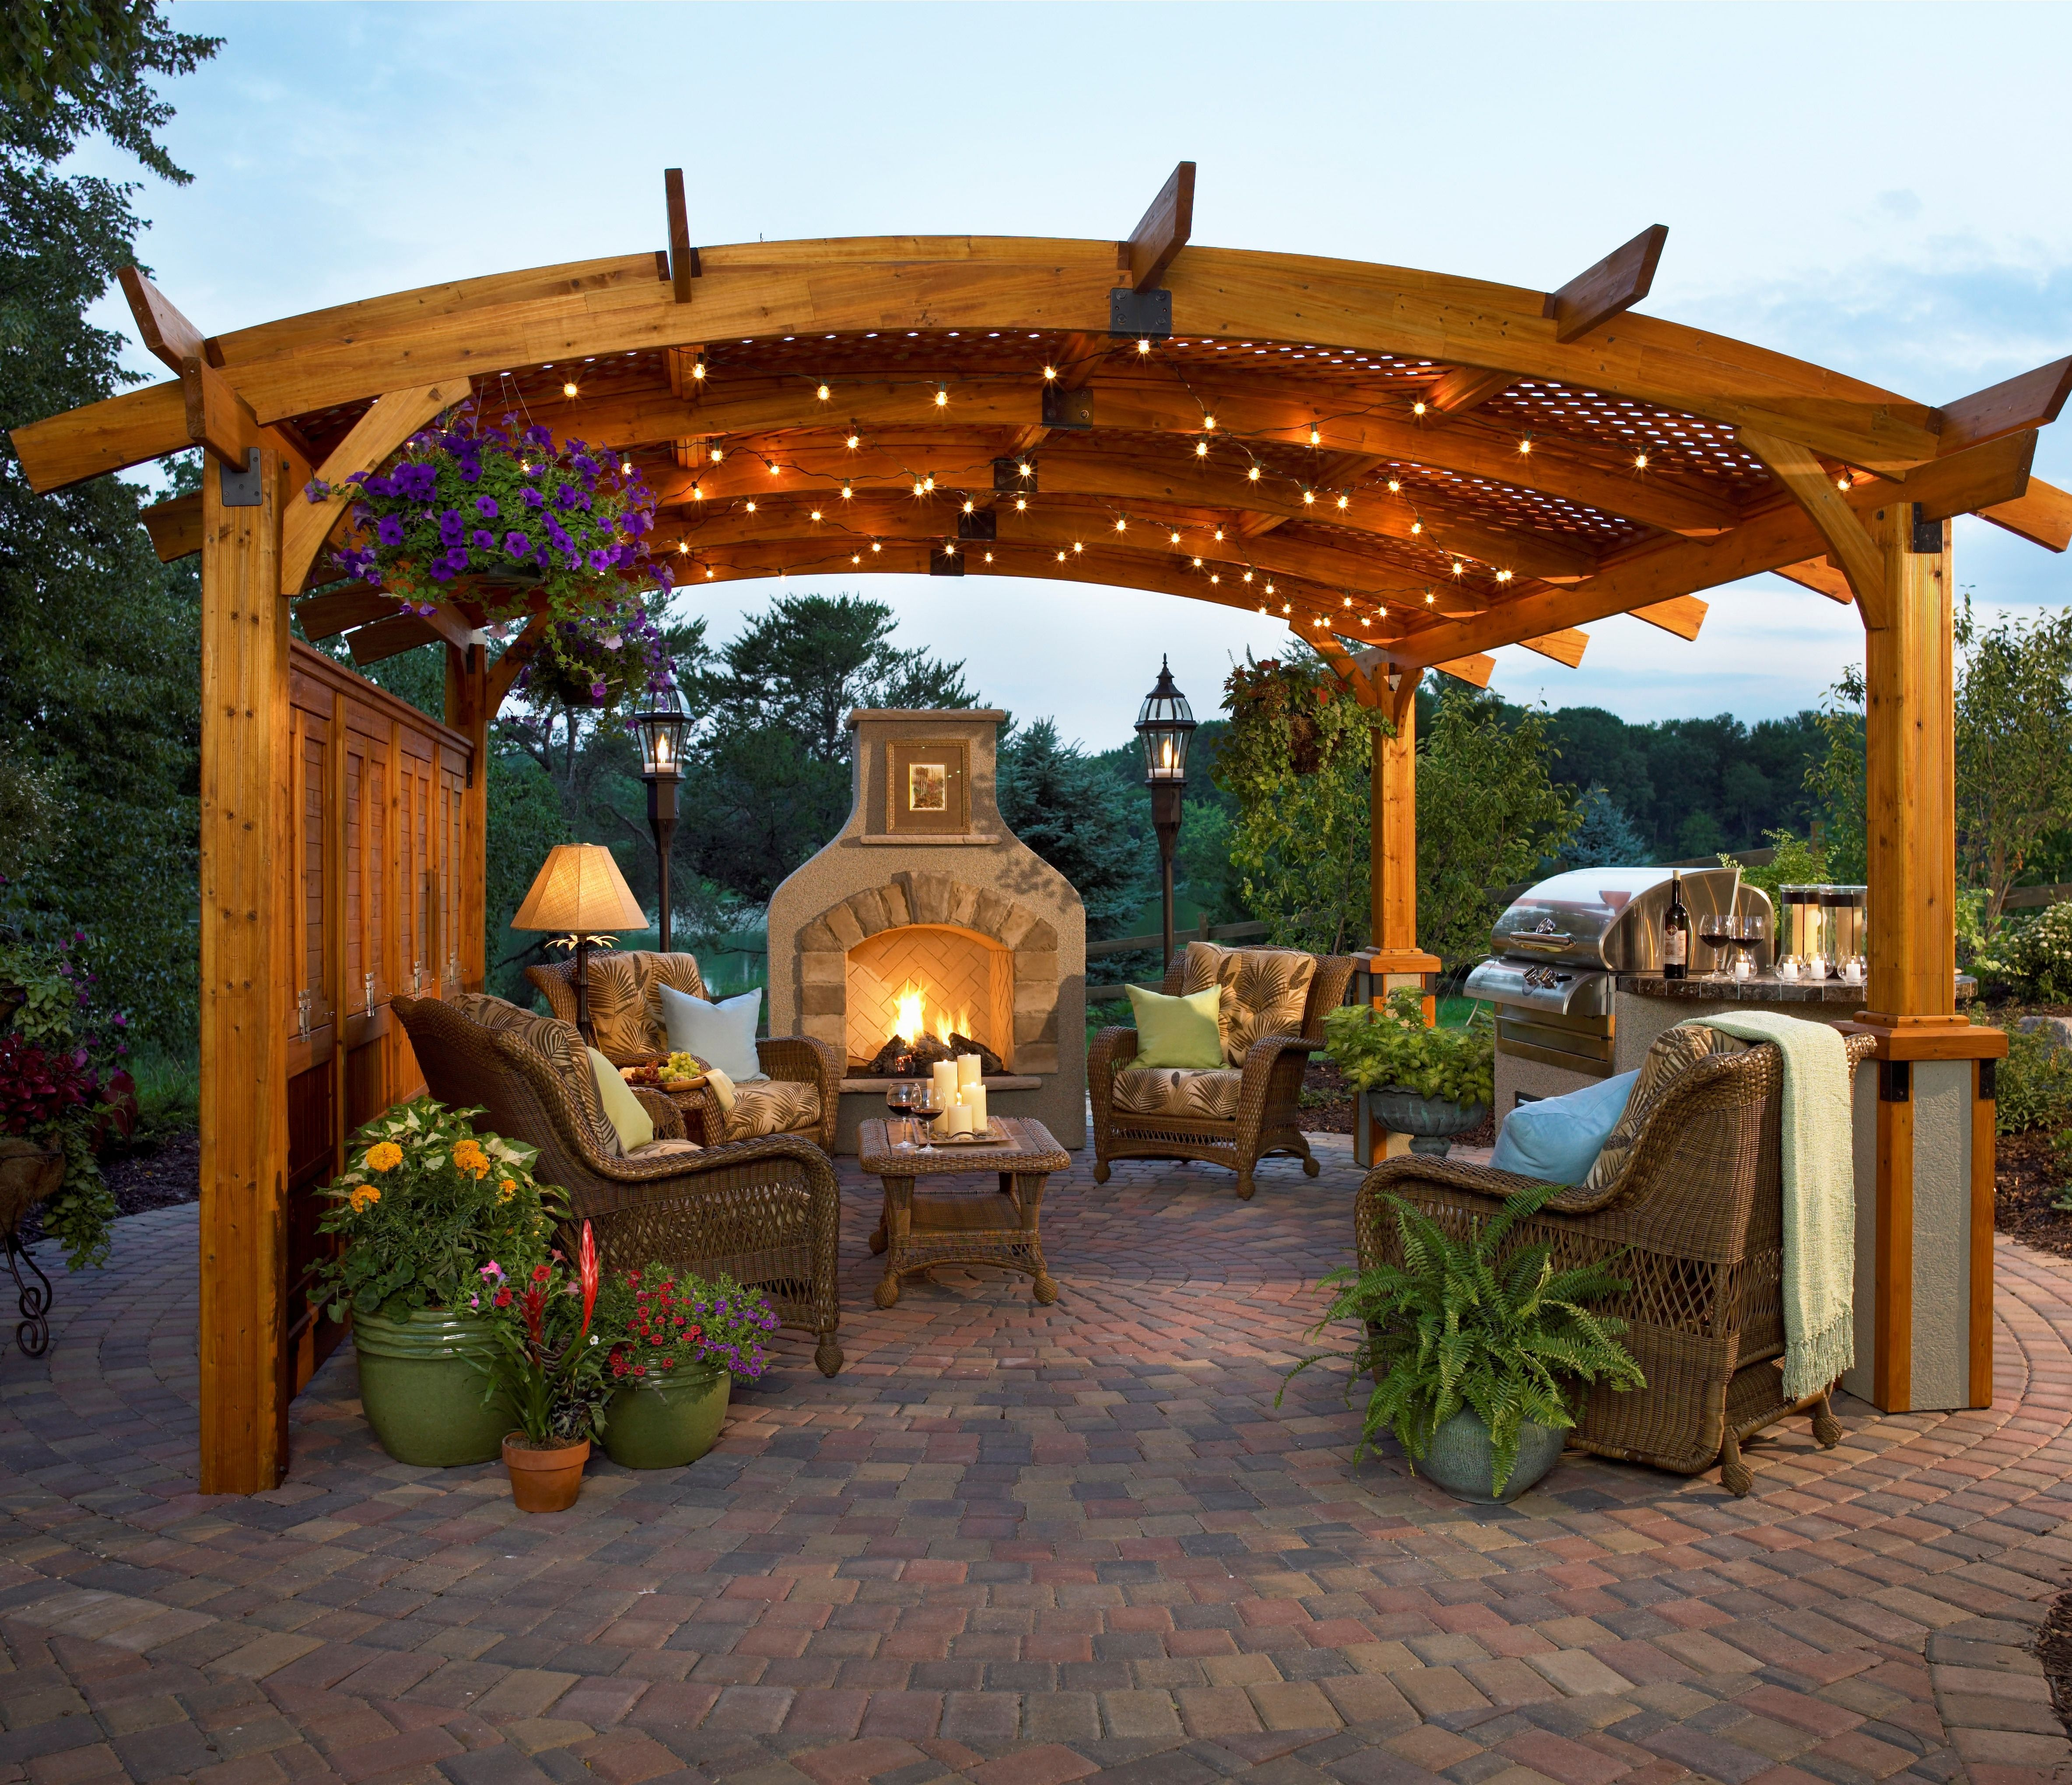 This Pergola Is Equipped With A Fire Place Comfortable Furniture